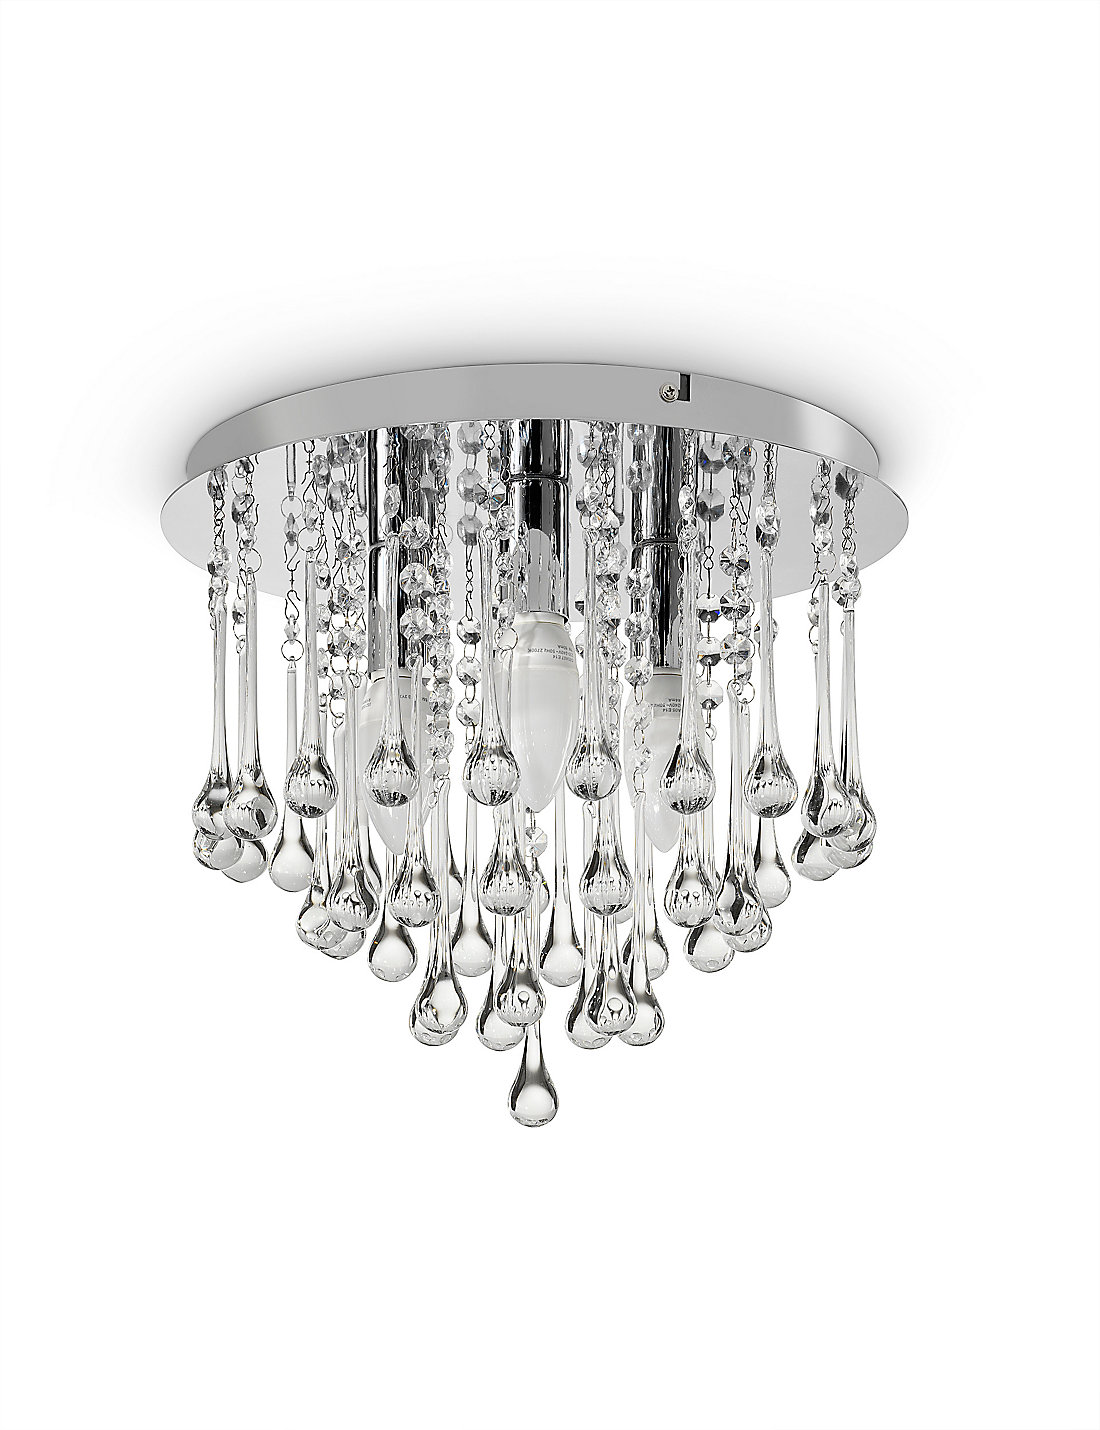 10 things to consider before buying glass droplet ceiling lights on the contrary a very heavily designed room with lavish furniture will require an opulent glass droplet light to complete the looks mozeypictures Gallery